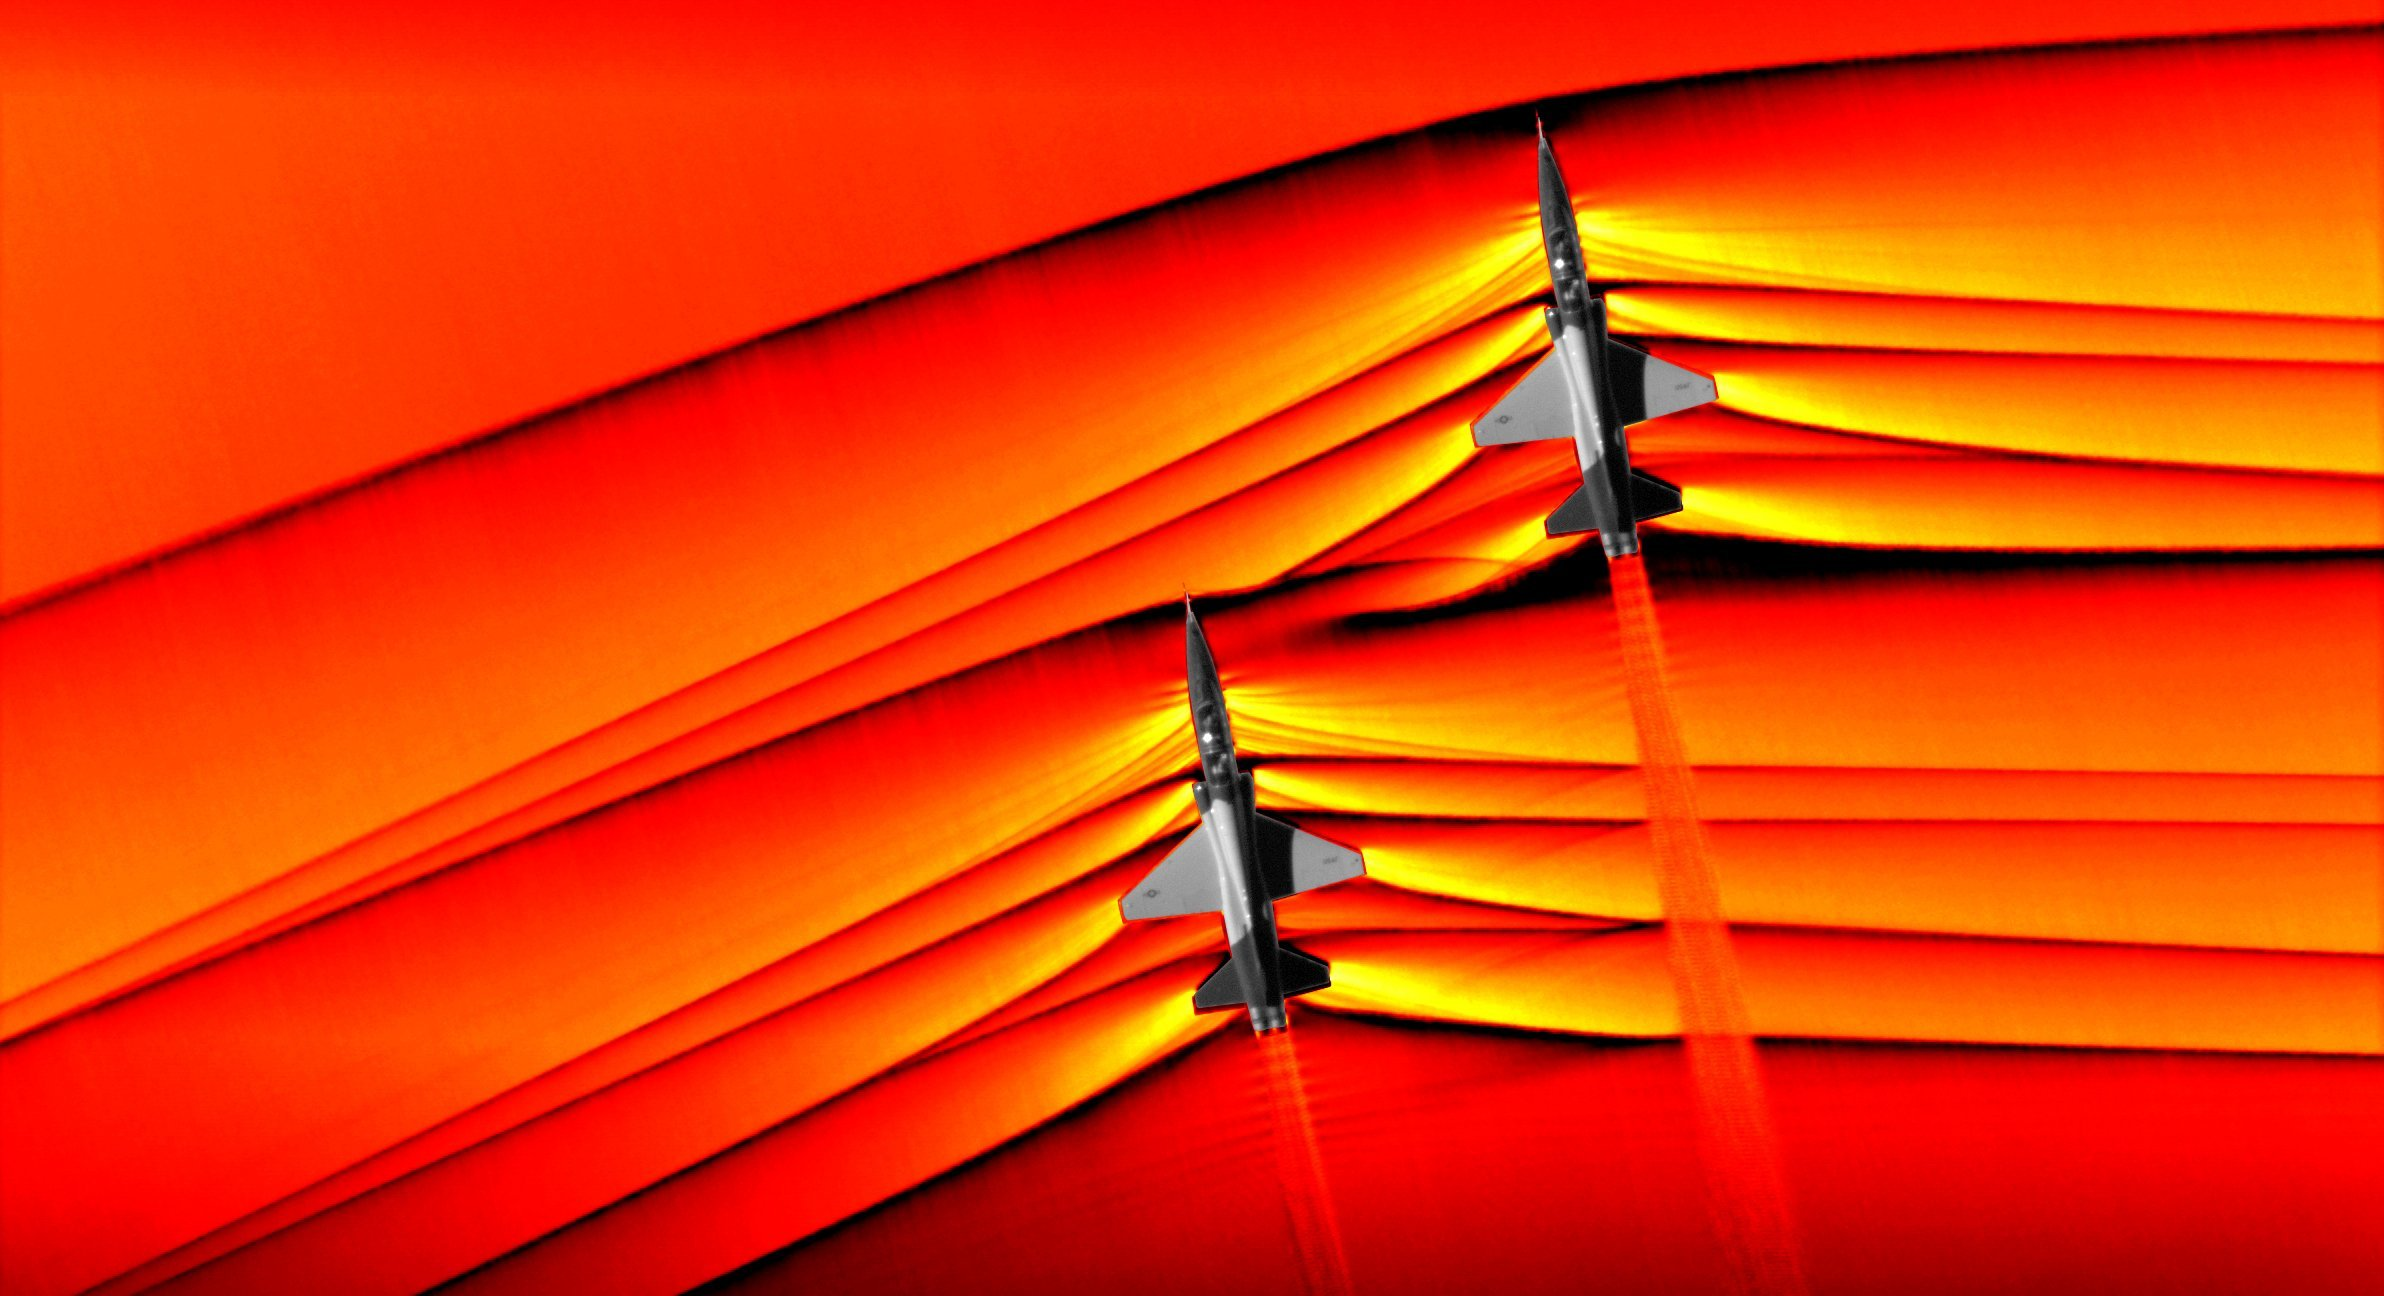 NASA captured the first ever air-to-air images of shock waves interacting from two supersonic T-38 US Air Force jets. (Credit: NASA)